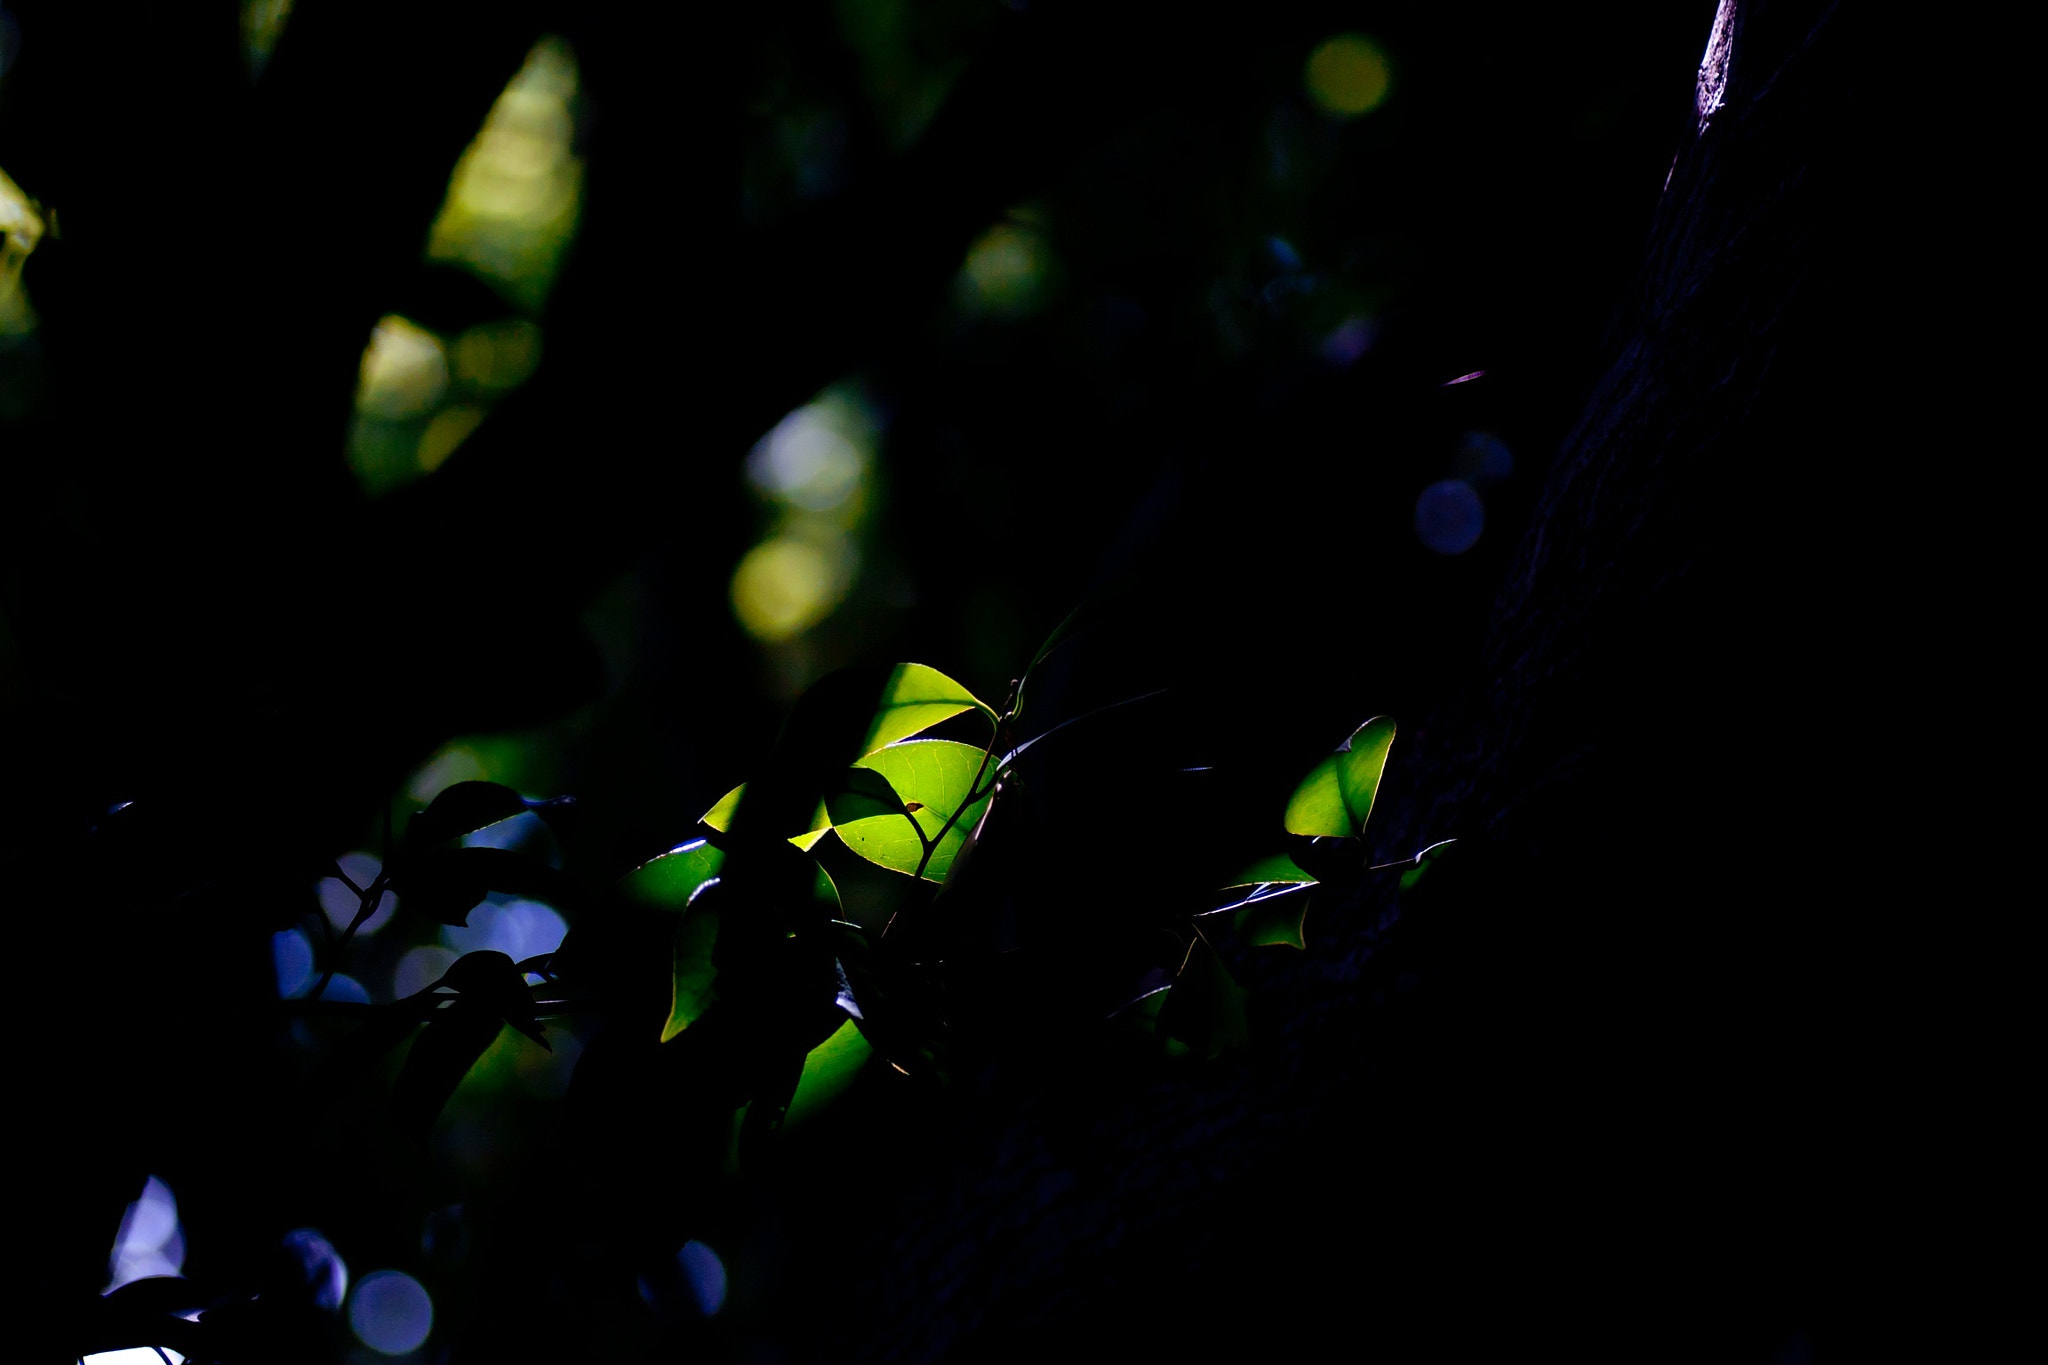 Photograph green/another light by Ryota Shimizu on 500px